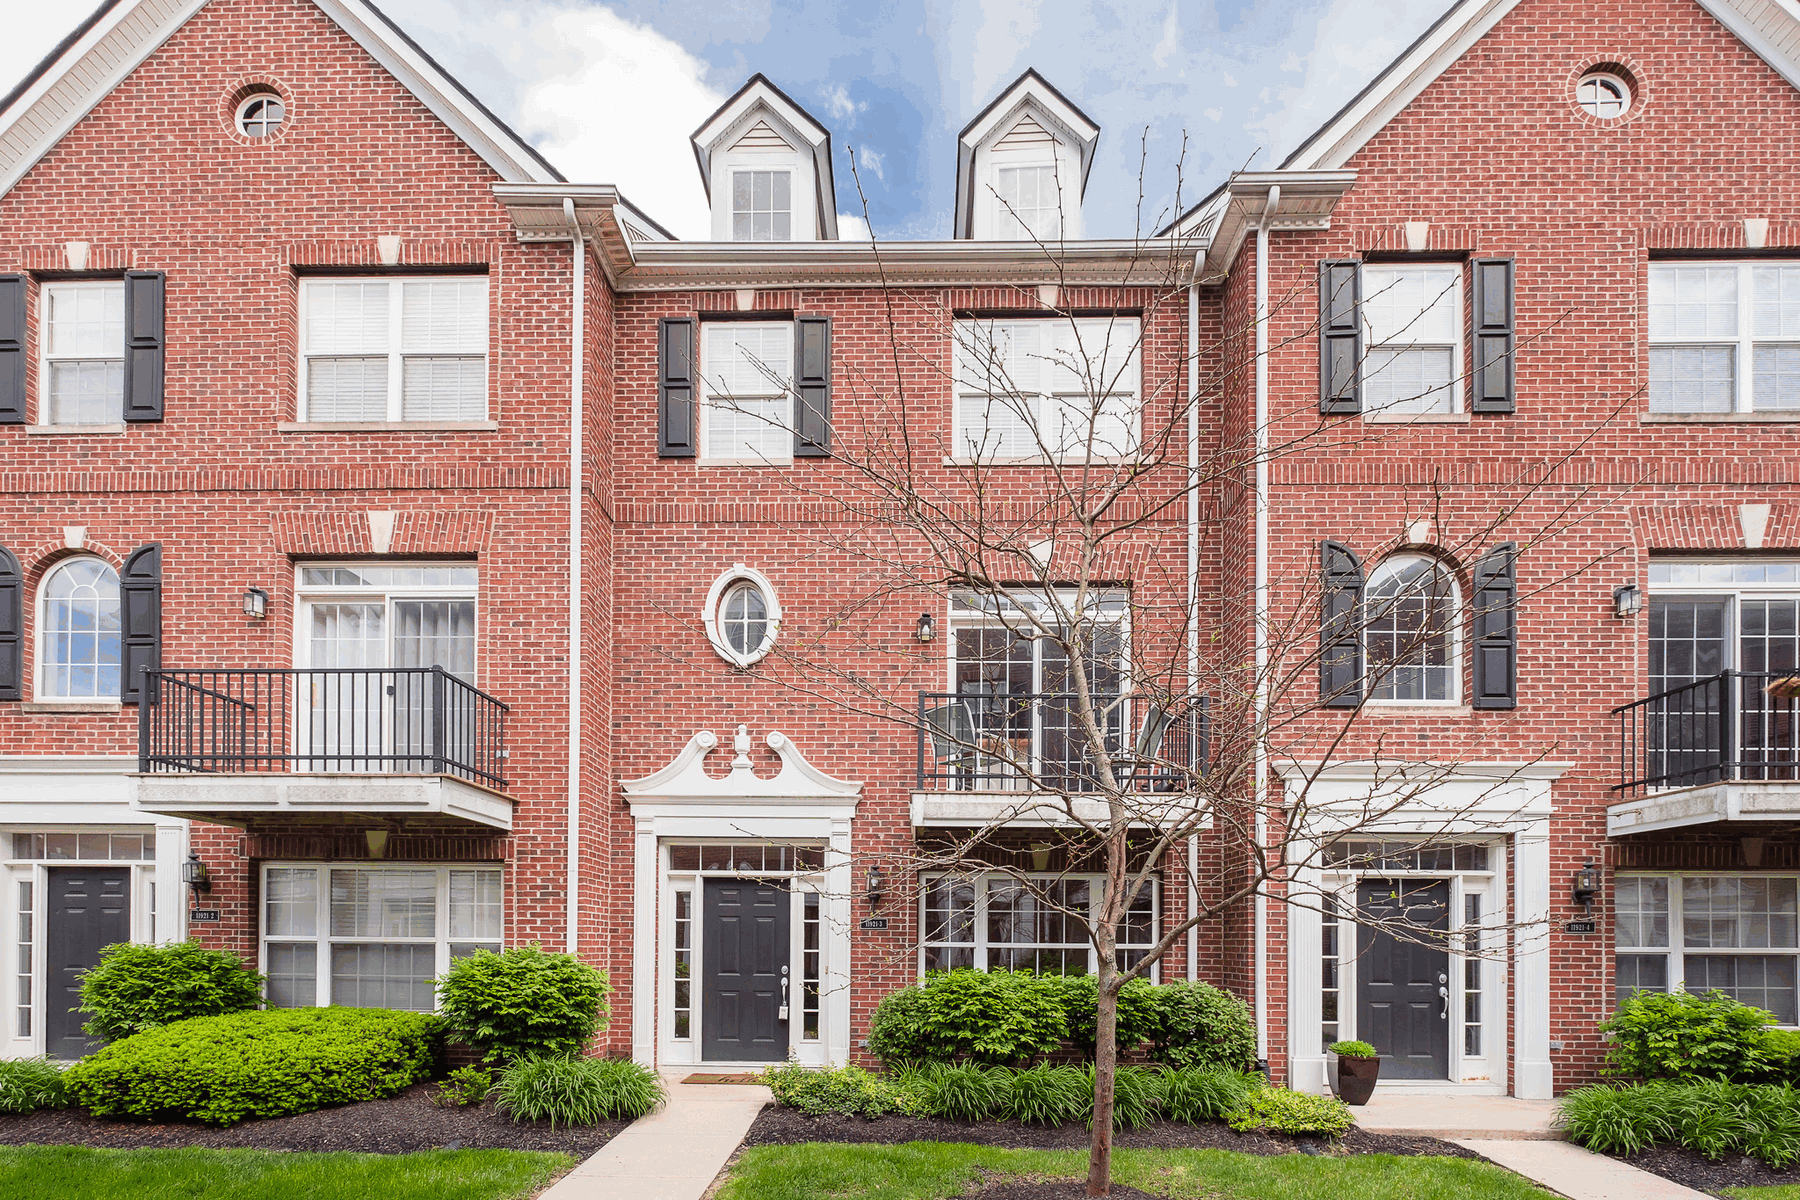 townhouses for Sale at Beautiful Townhome in Zionsville 11921 Riley Drive Unit #3 Zionsville, Indiana 46077 United States